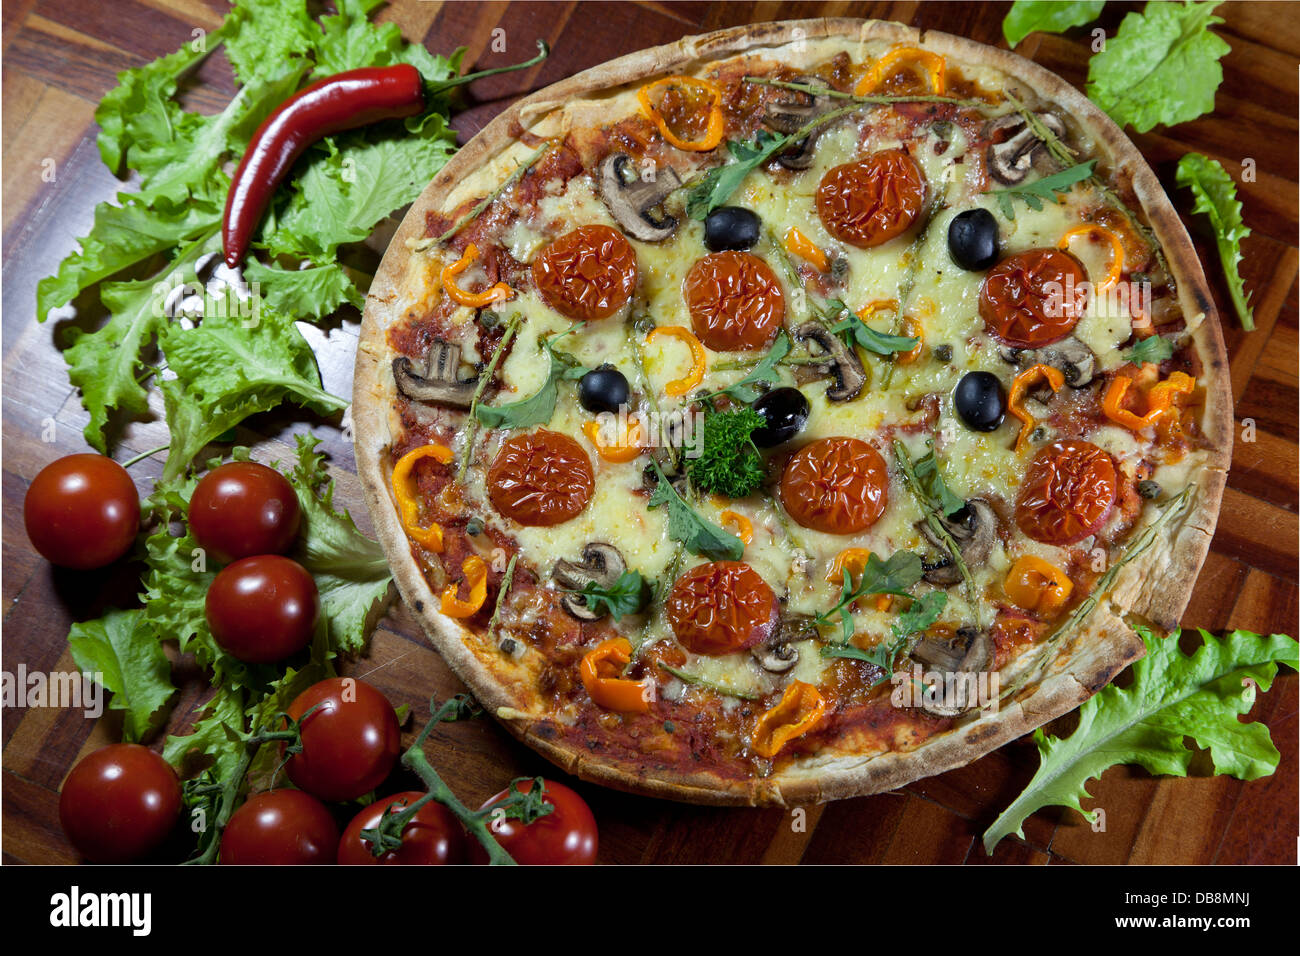 Pizza surrounded with vegetables - Stock Image